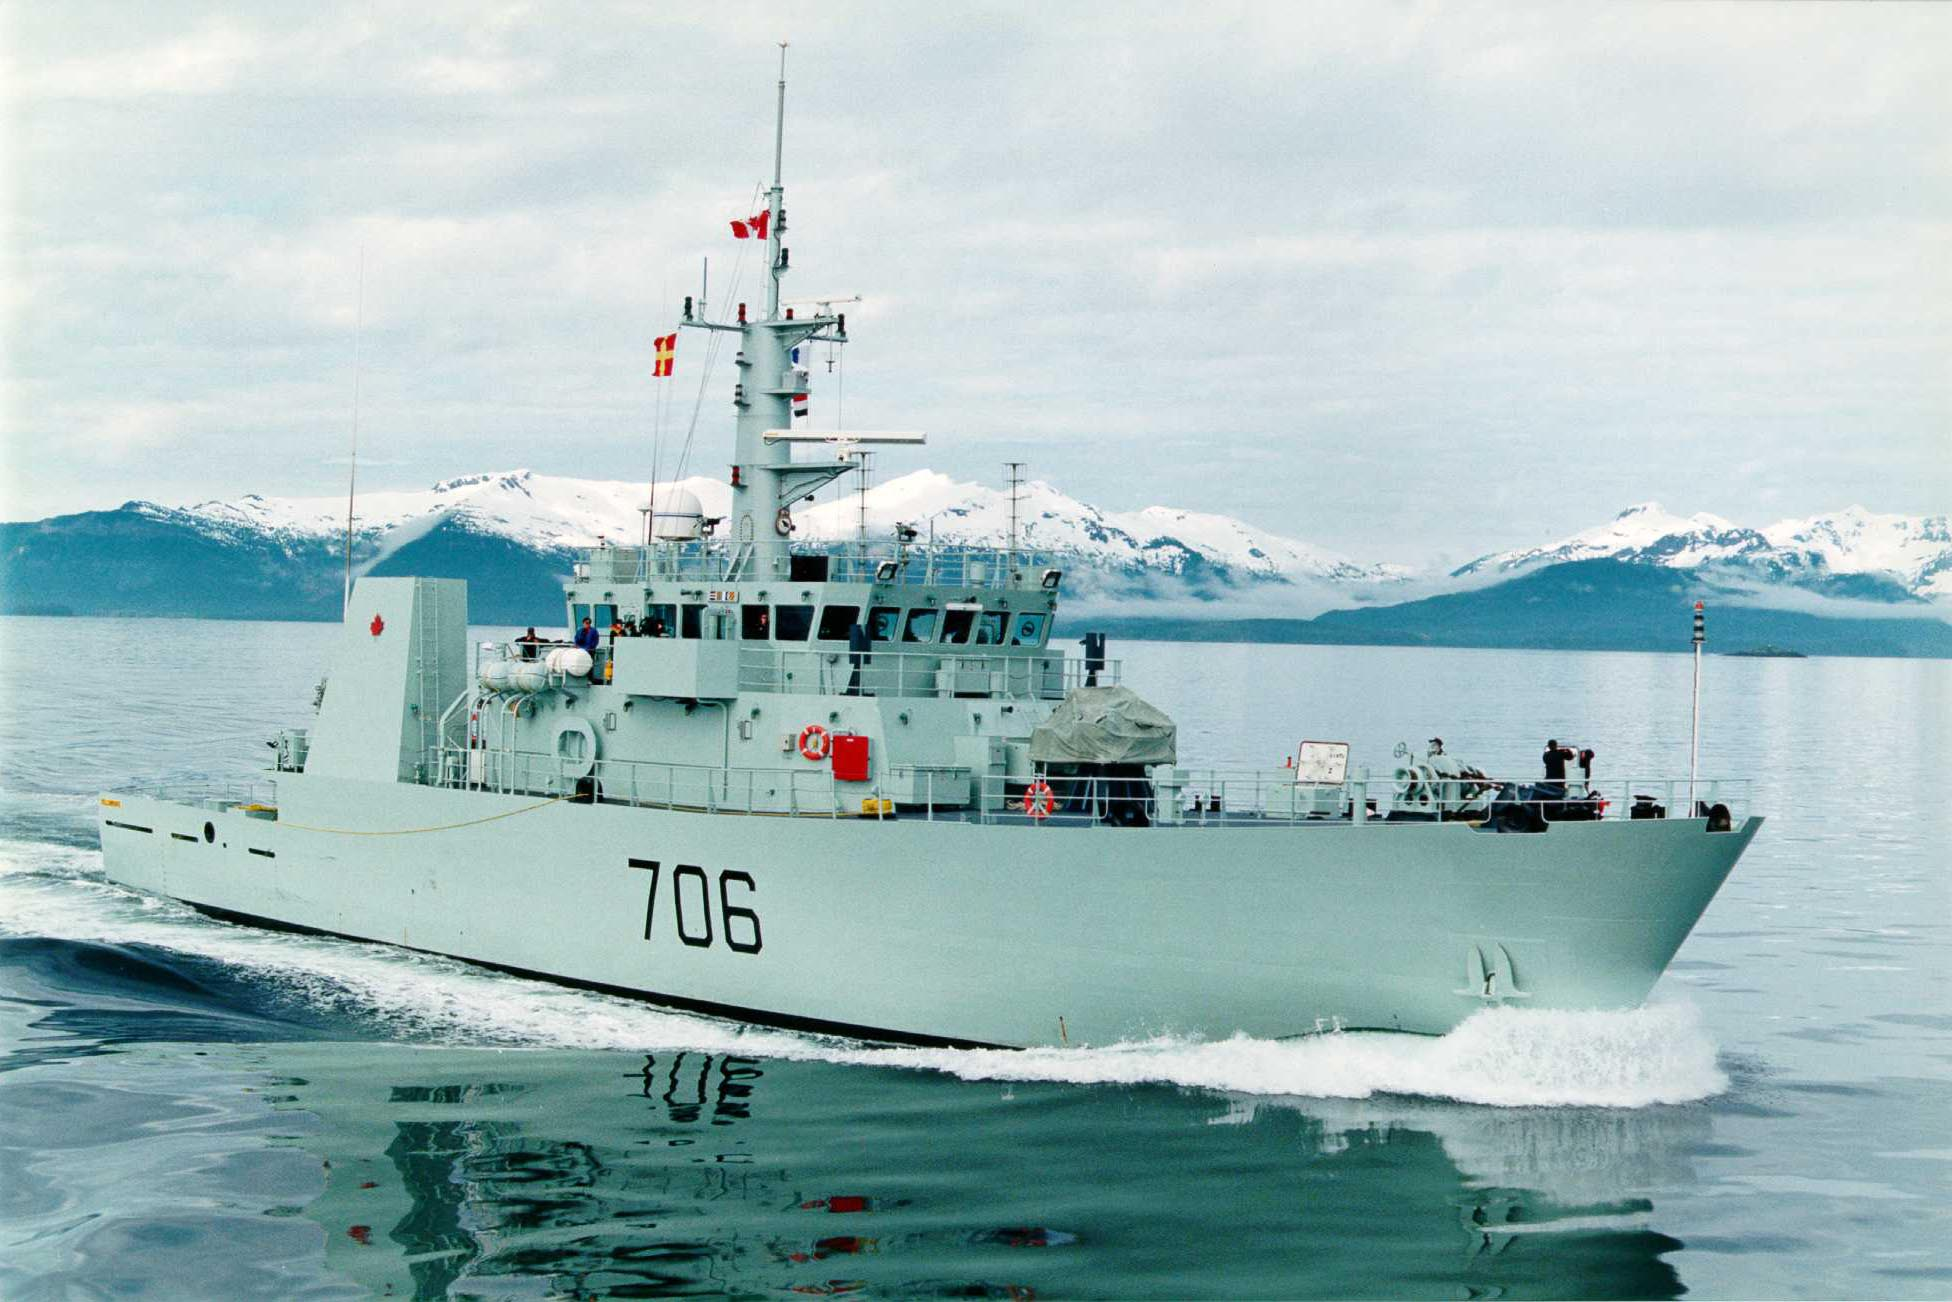 HMCS YELLOWKNIFE